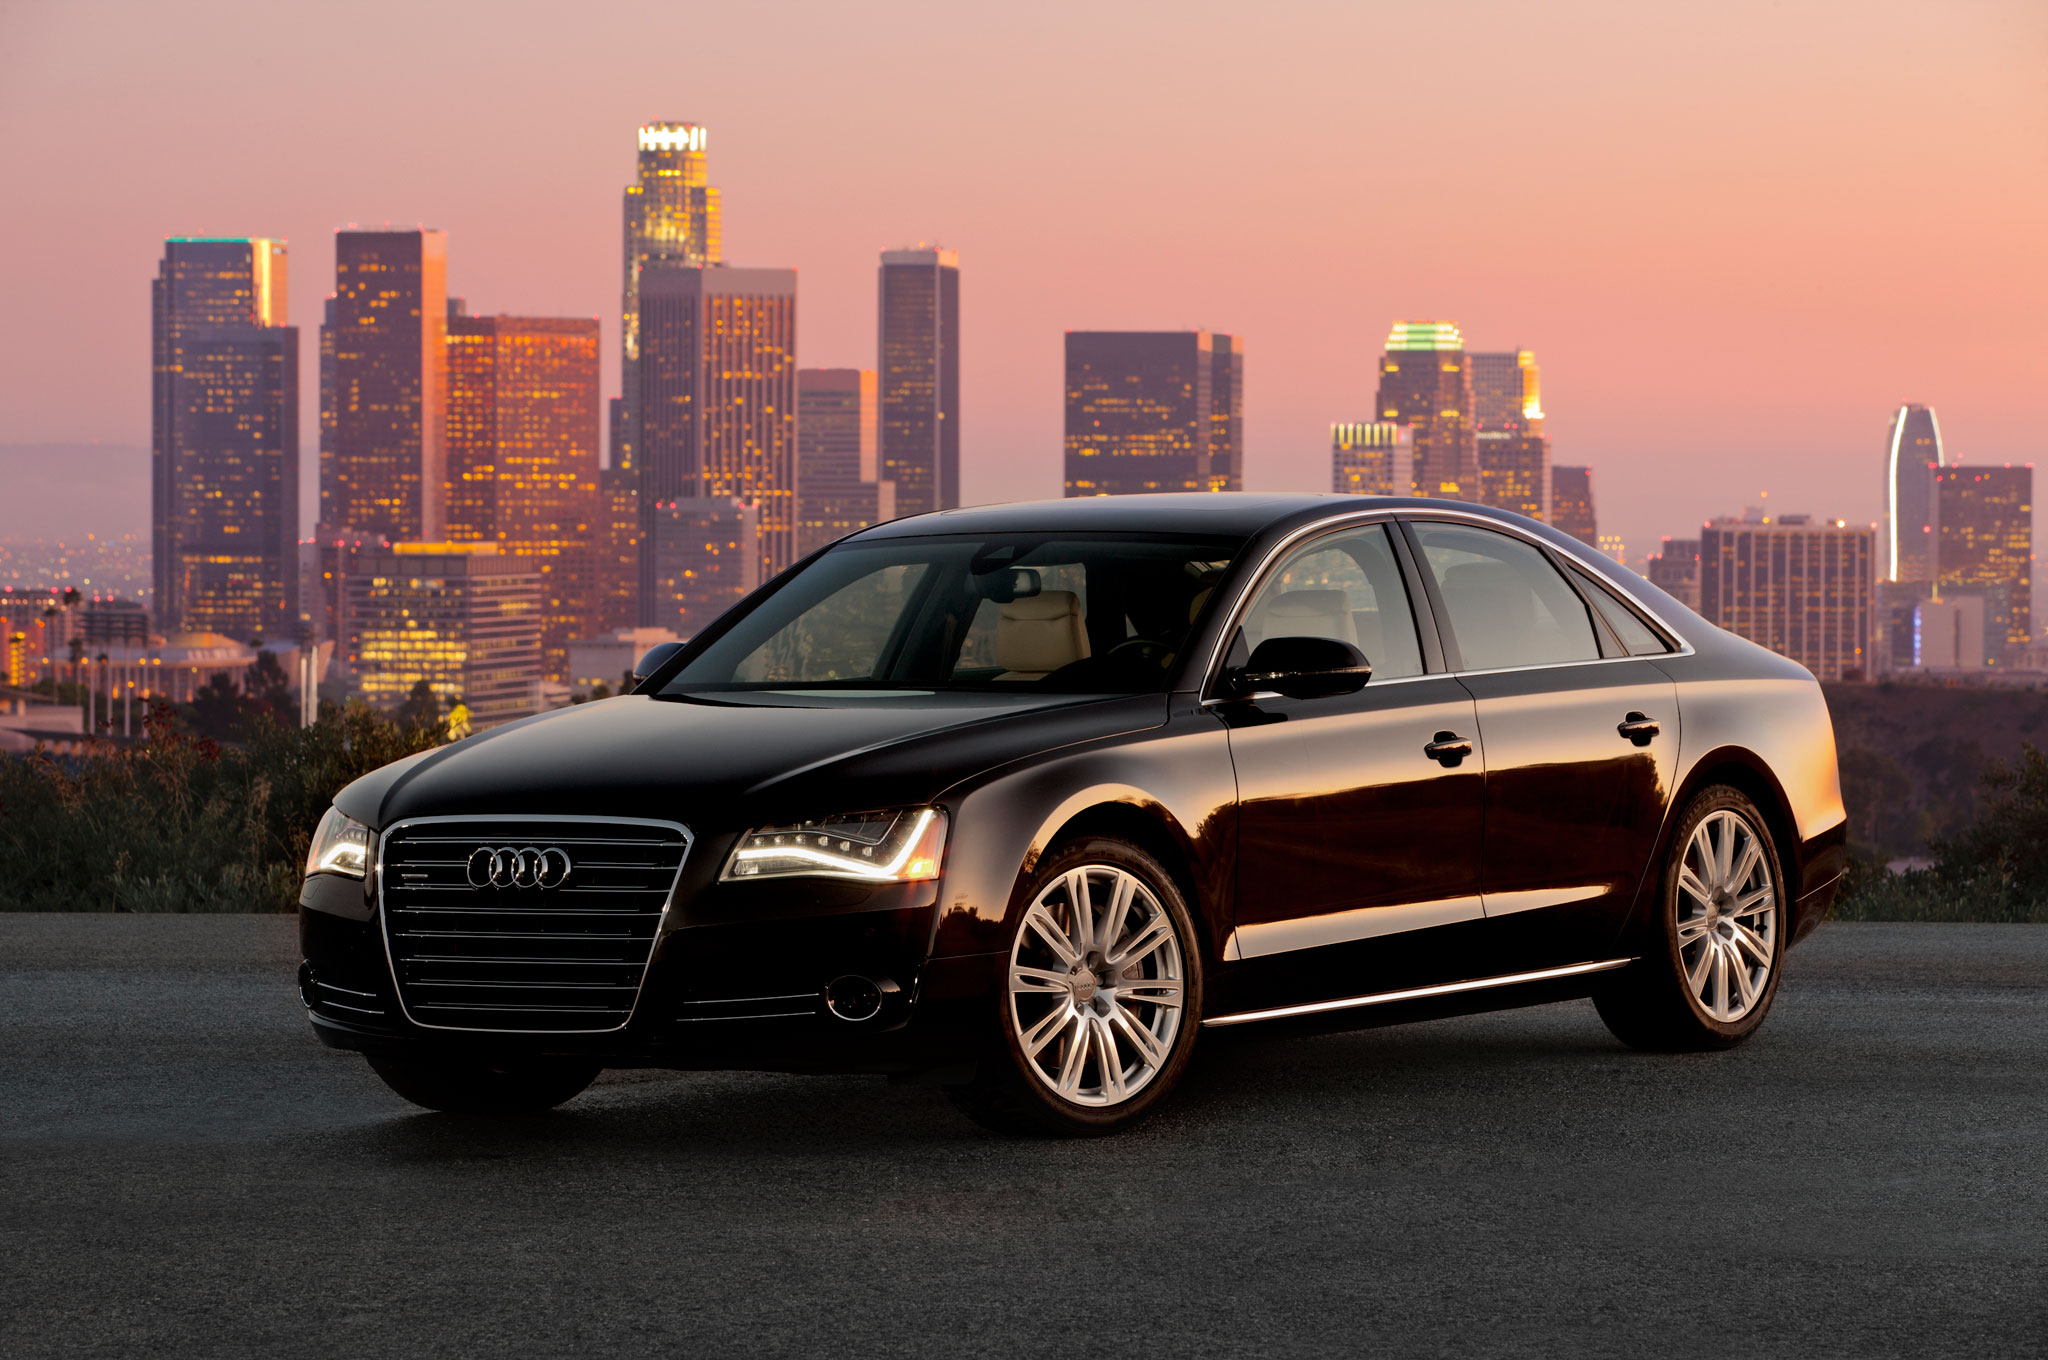 Audi A L W Exclusive Packs Even More Luxury Within - Audi 8